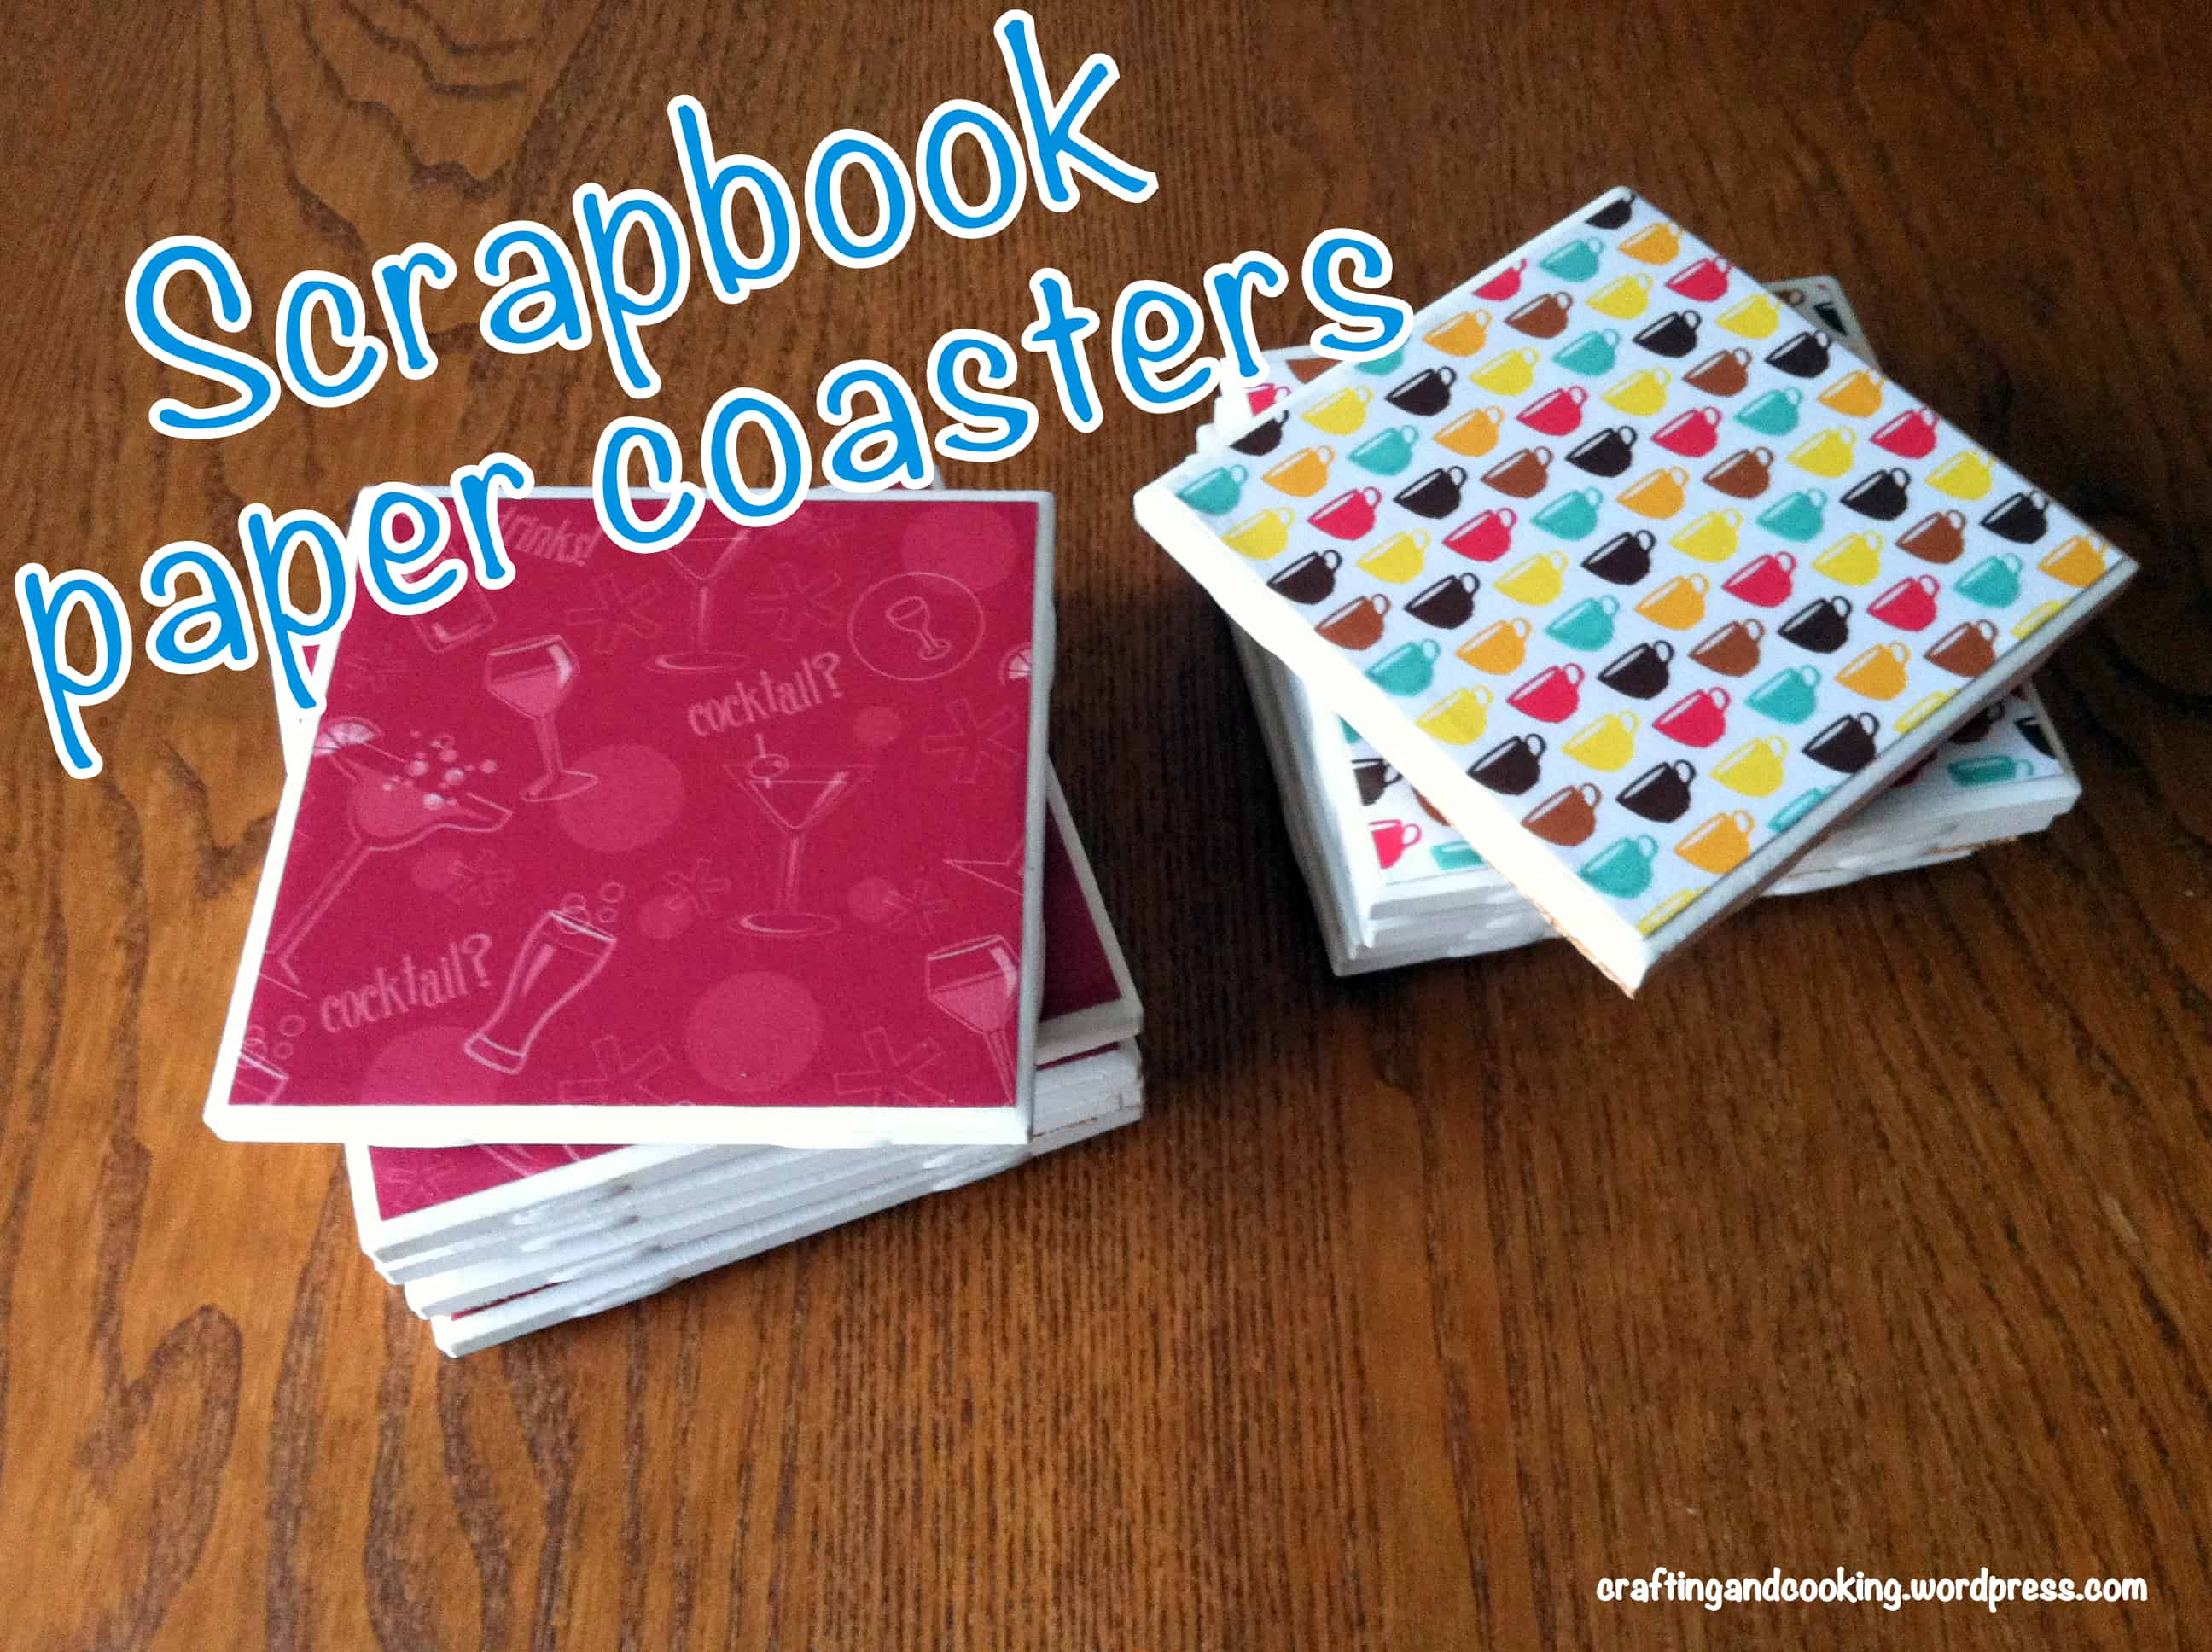 Scrapbook paper and tile coasters